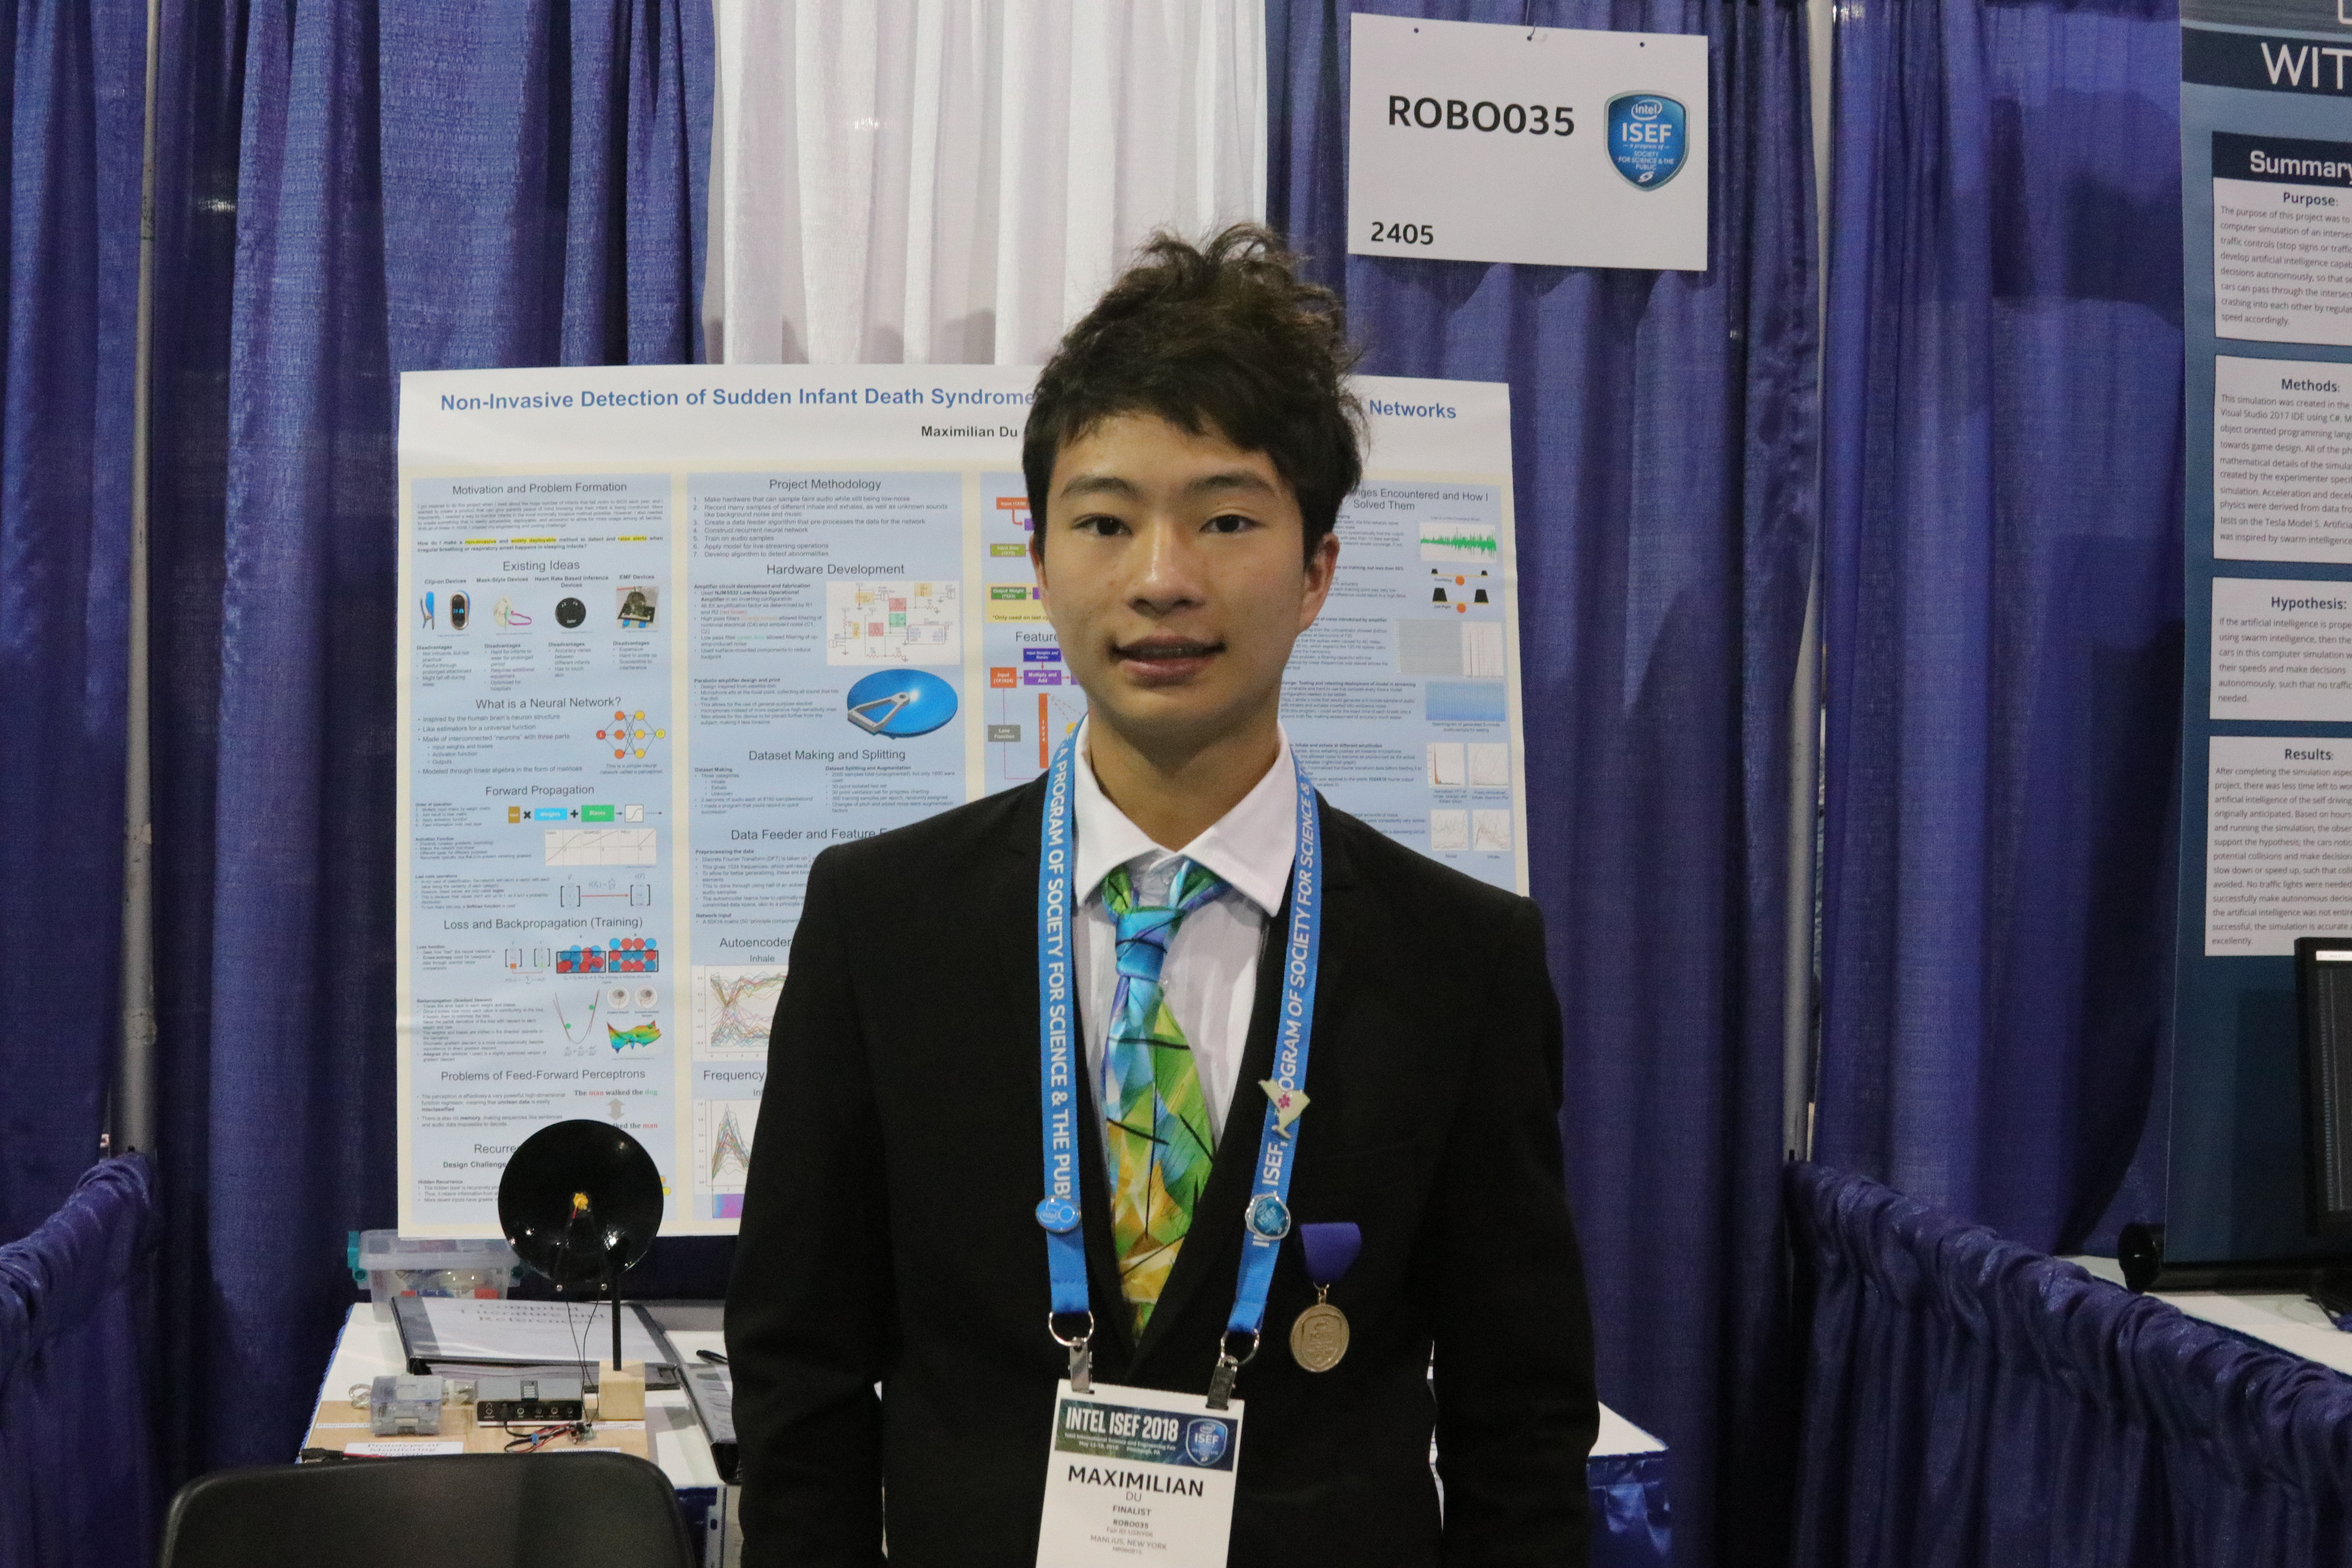 ISEF 2018 picture